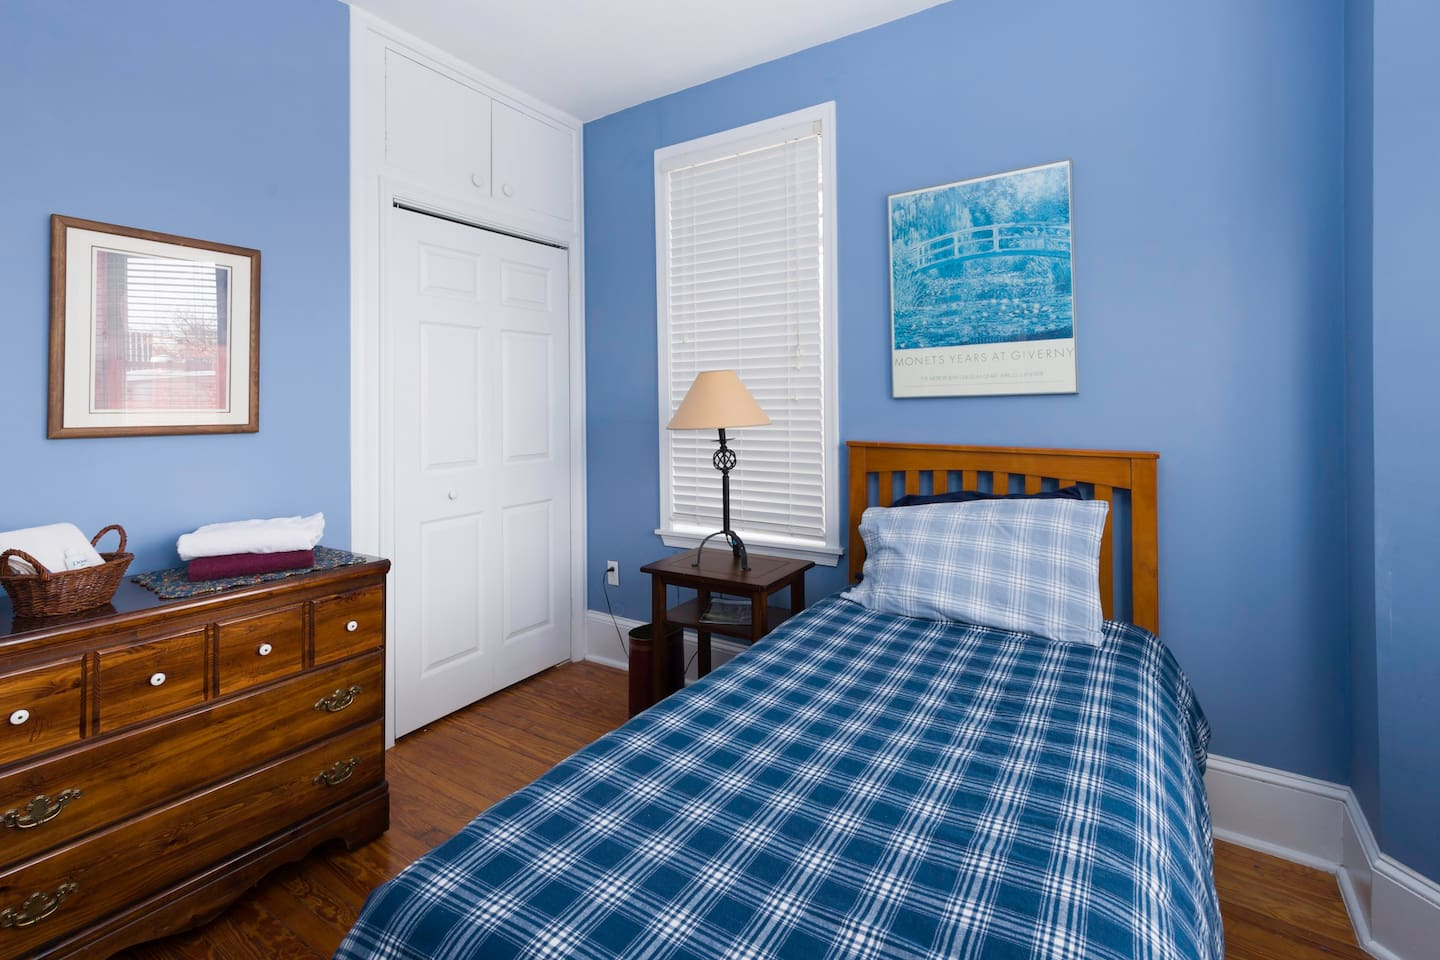 This room currently has this single bed and three drawer bureau.